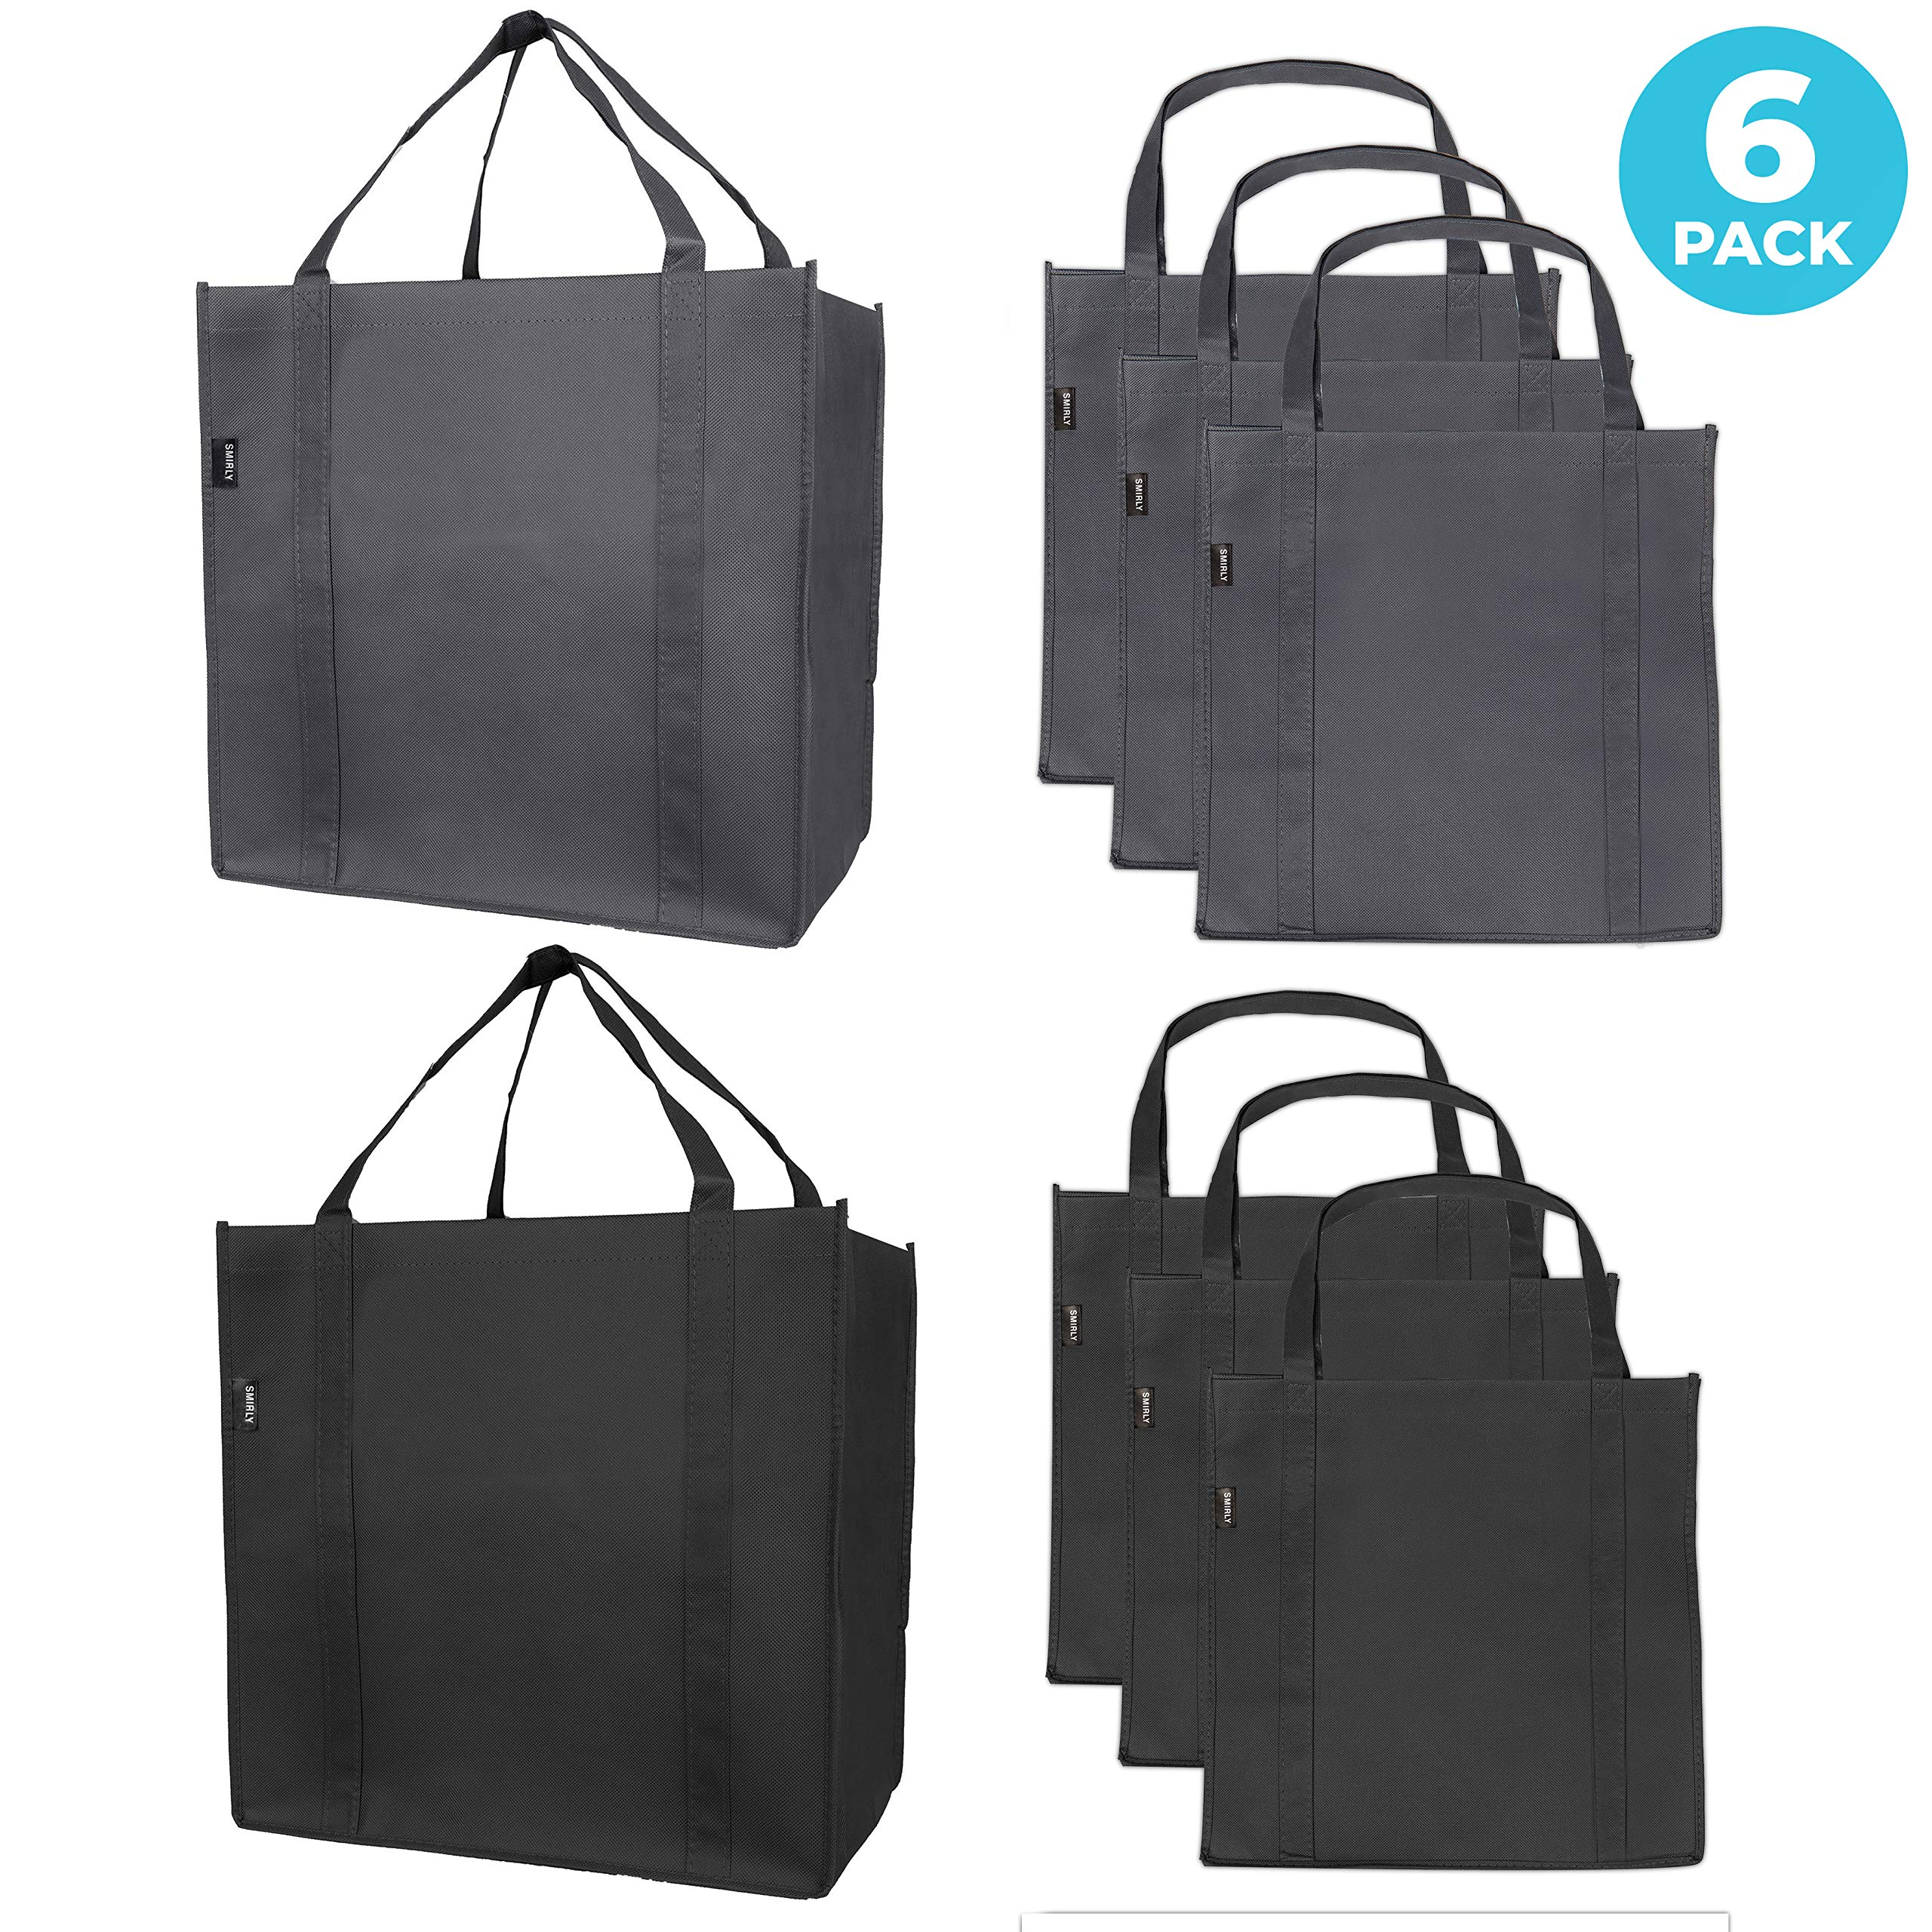 Reusable Folding Grocery Tote Bags: 6 Extra Large Fabric Totes with Handles and Inner Pocket, Heavy Duty Shopping Totes With Thick Support Bottom